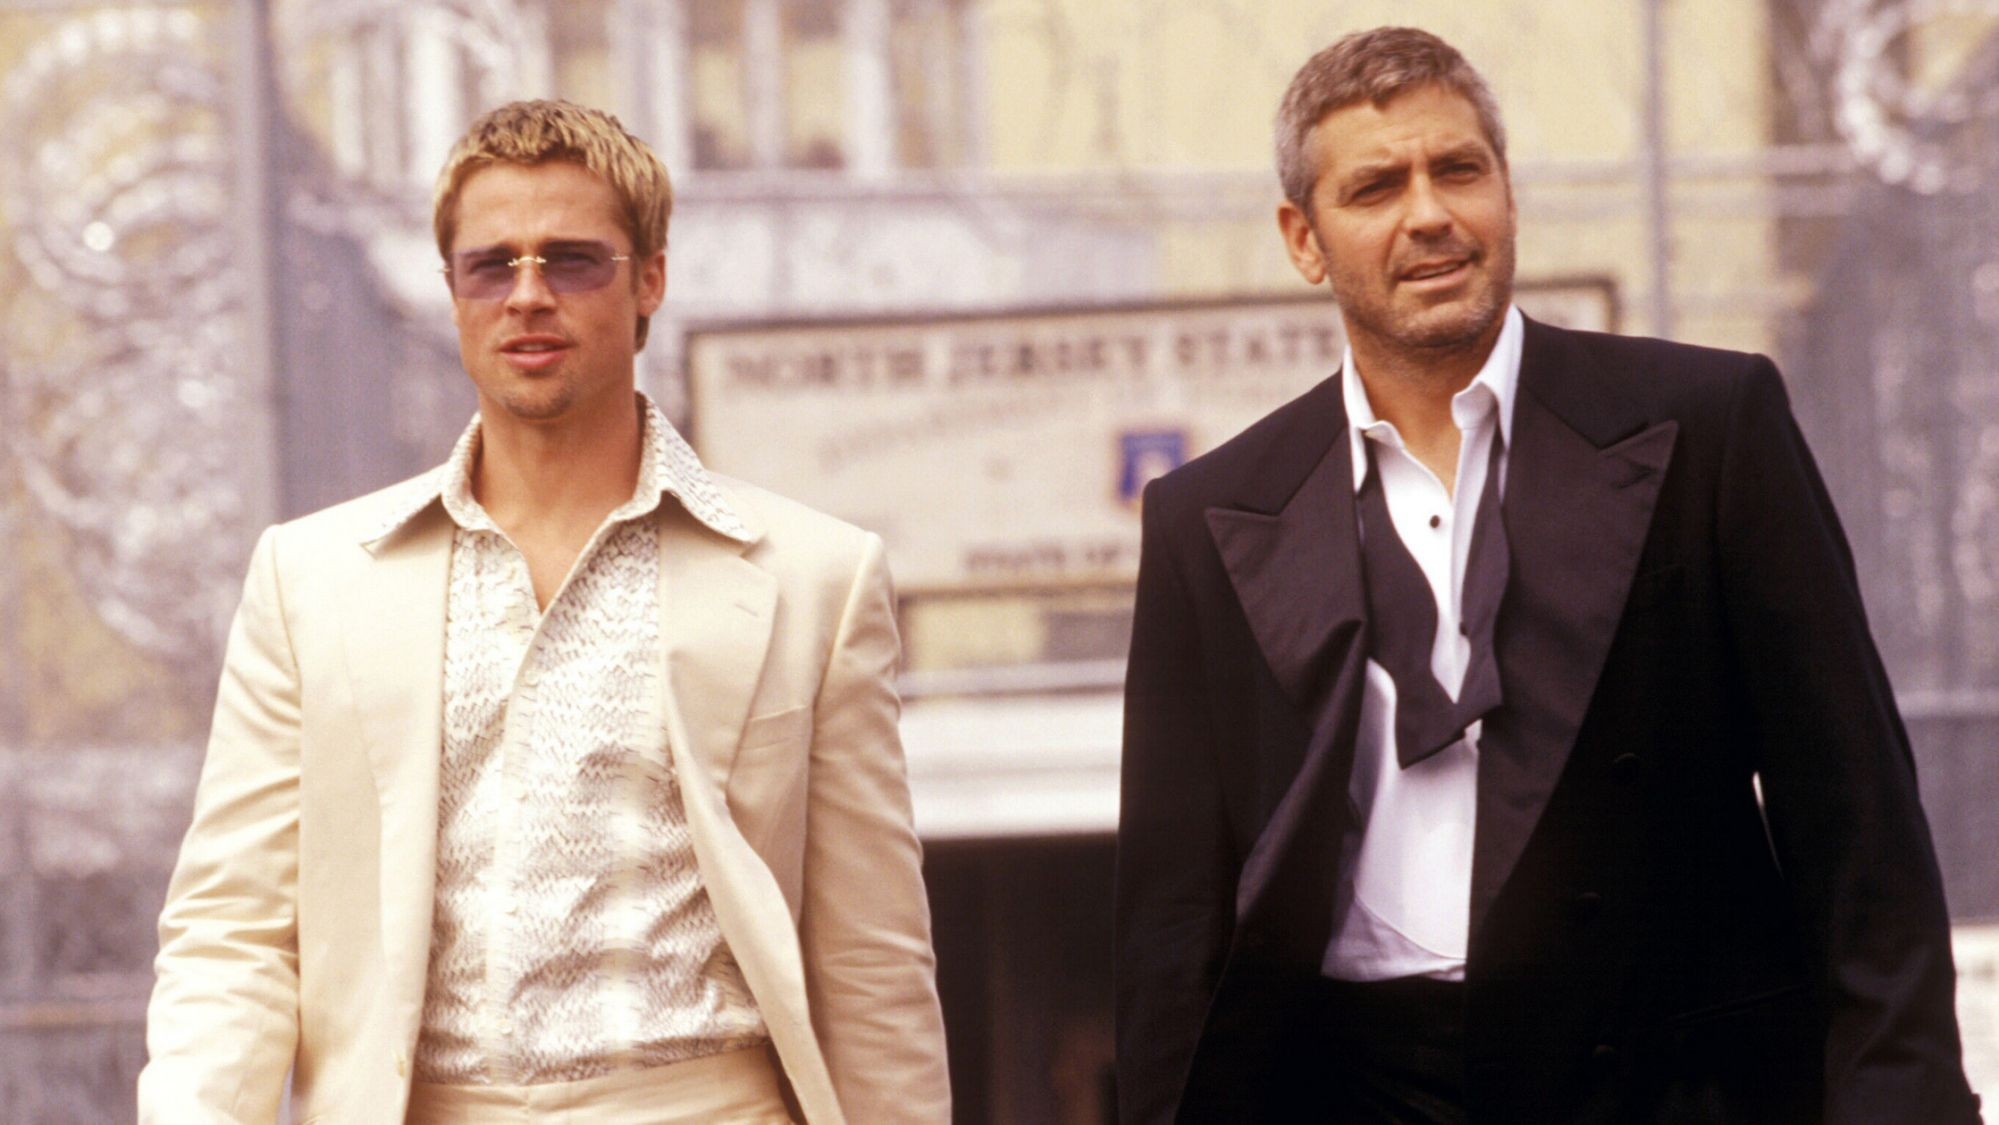 Brad Pitt, George Clooney Fight Rumors and Real Truth